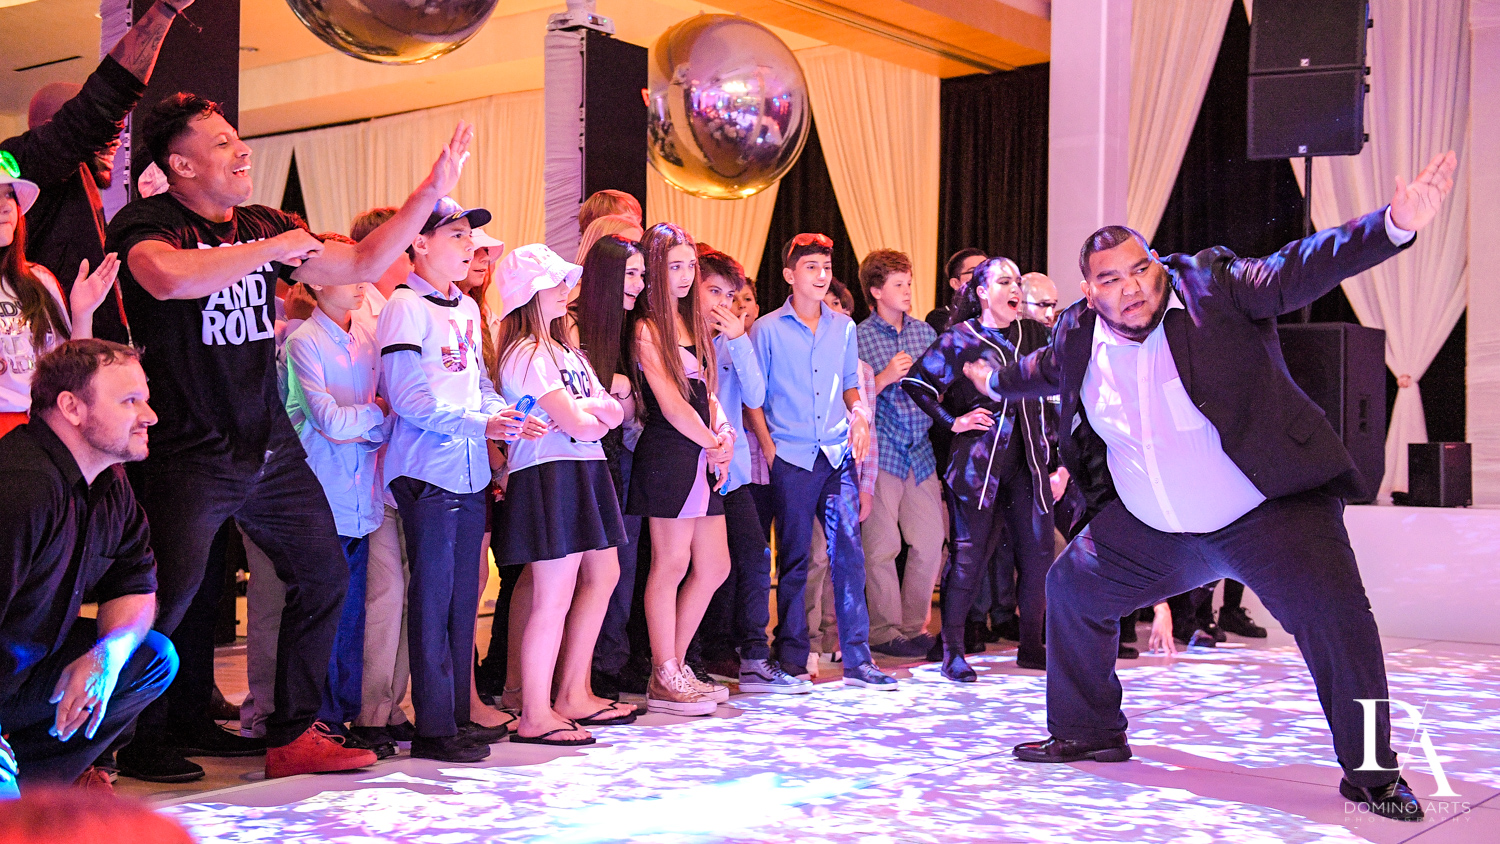 Show at Masquerade Ball Bat Mitzvah at Ritz Carlton Fort Lauderdale by Domino Arts Photography